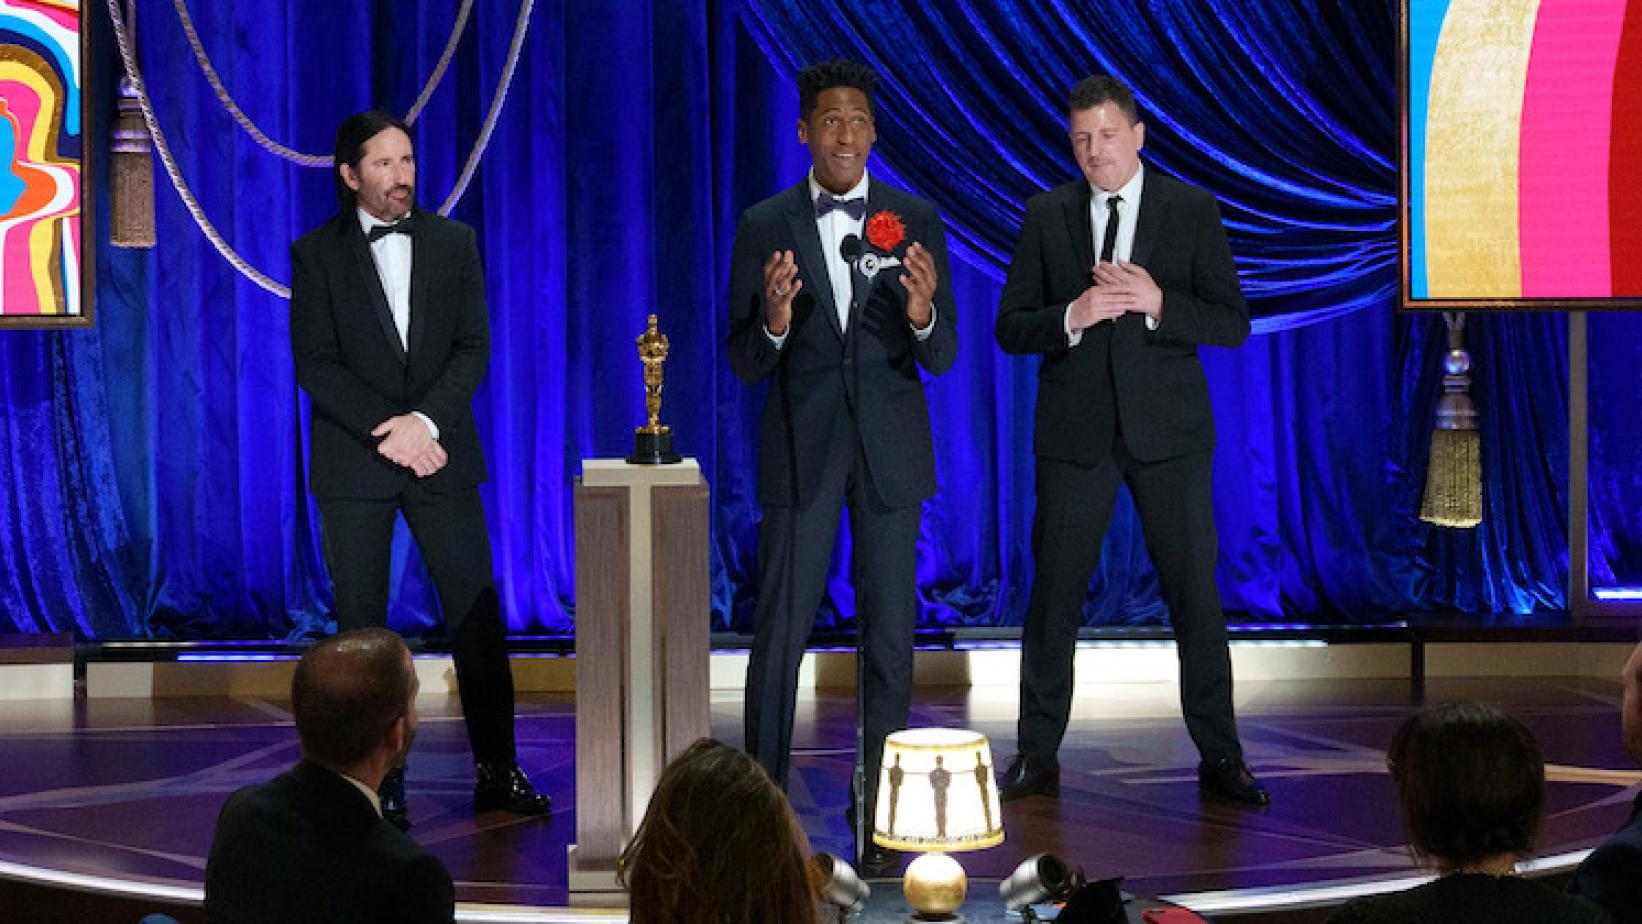 Photo of  (L-R) Trent Reznor, Jon Batiste, and Atticus Ross accepting the Music (Original Score) award for 'Soul' at the 2021 Oscars